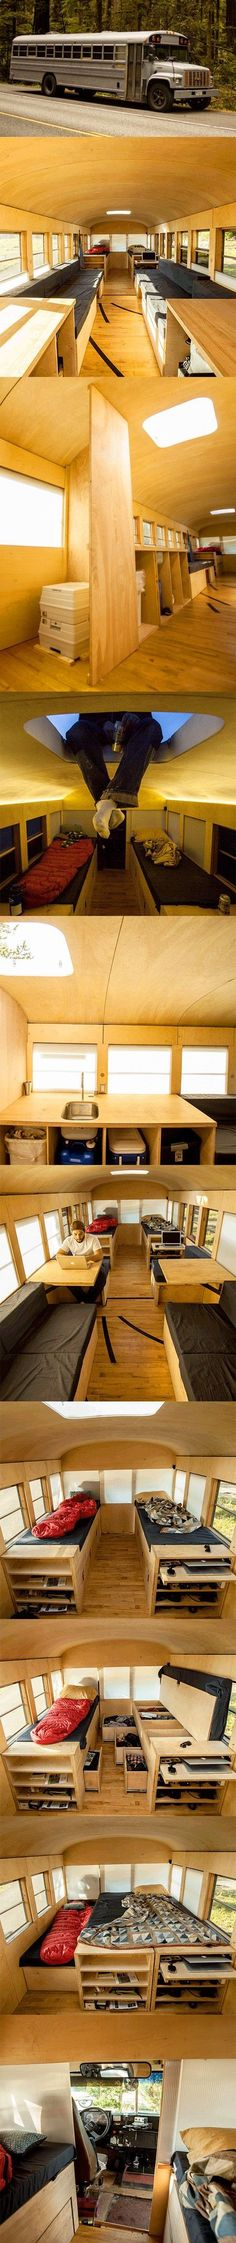 Architecture student Hank Butitta converted old school bus into a 225 square foot mobile home with small kitchen, living room, and bedroom. (Bottle Sketch Candle Holders)